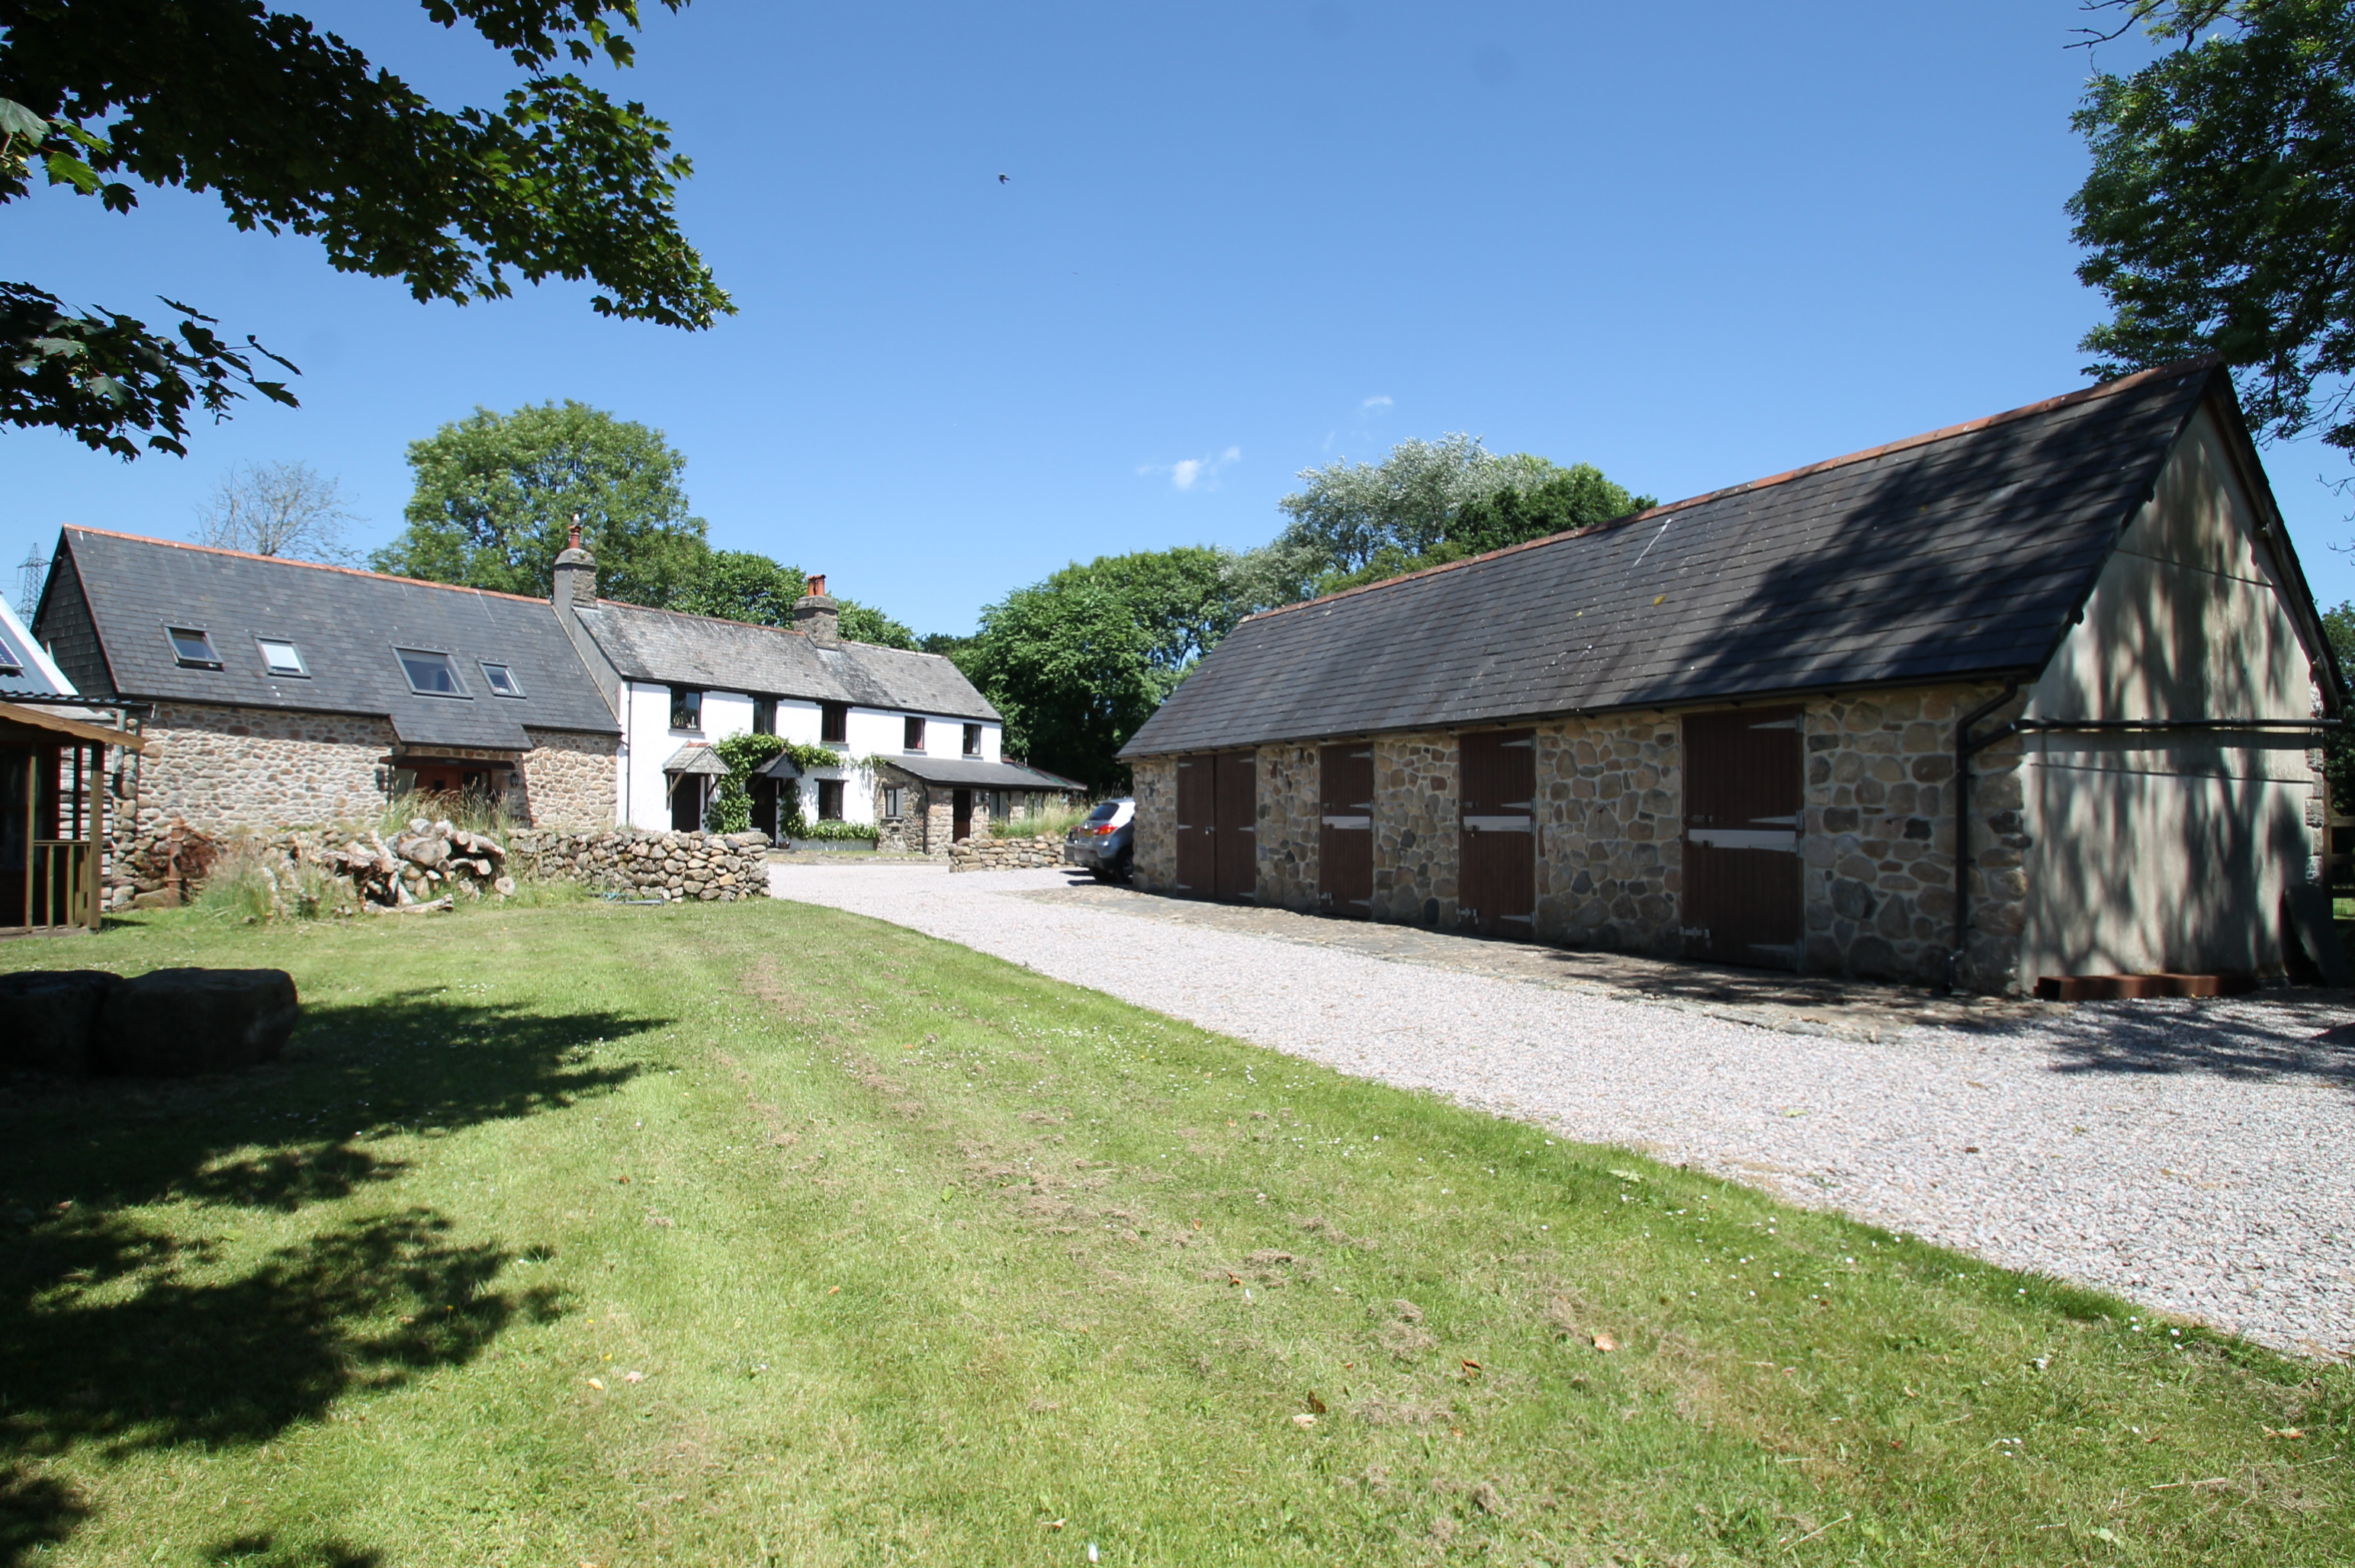 Farmhouses For Sale Uk 4 Bedroom Farmhouse For Sale In Ermington Road Ivybridge Pl21